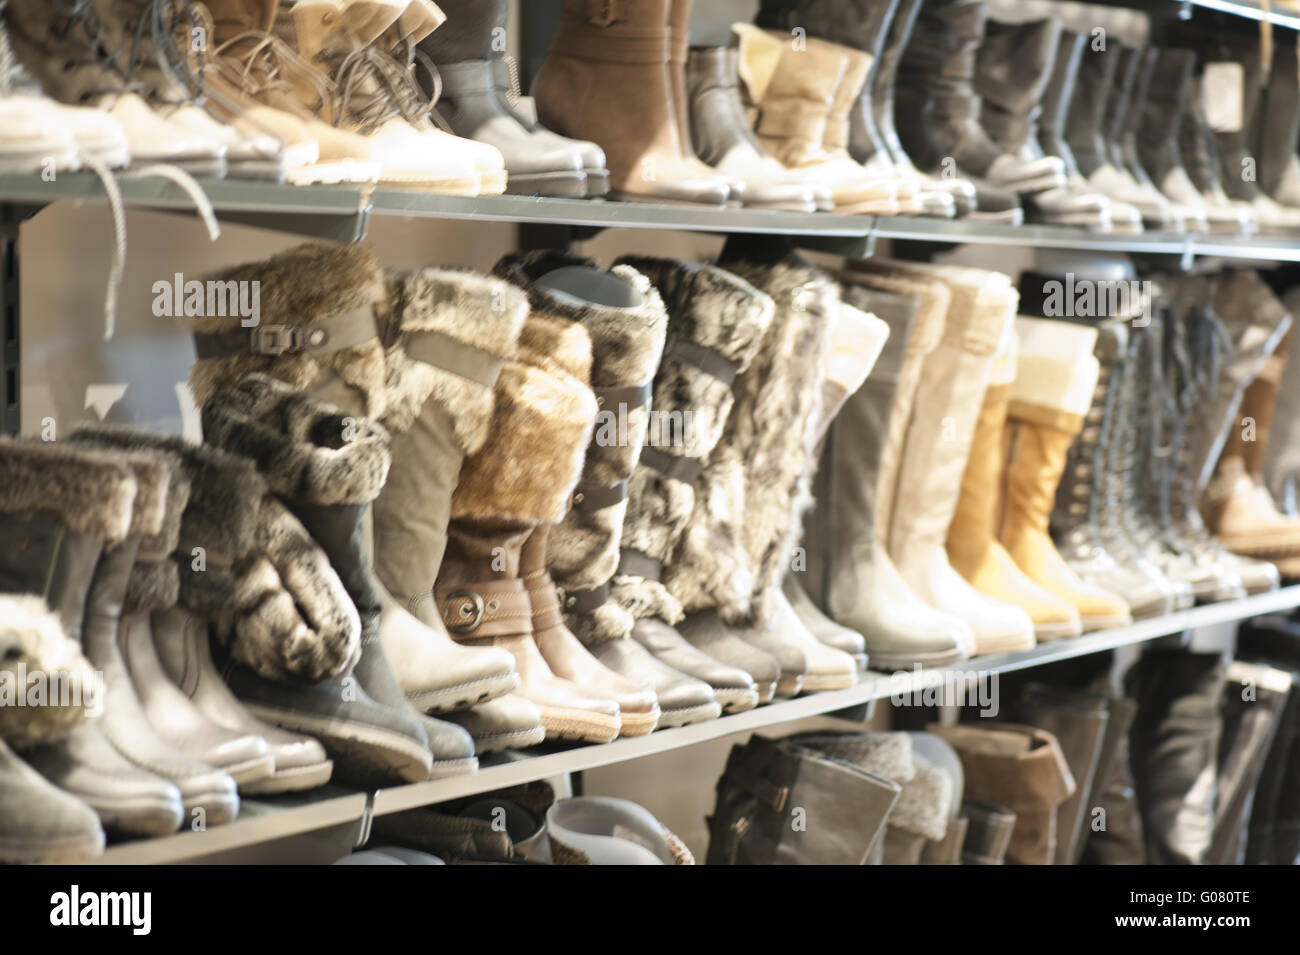 Outlet Center shelf with women's winter boots - Stock Image